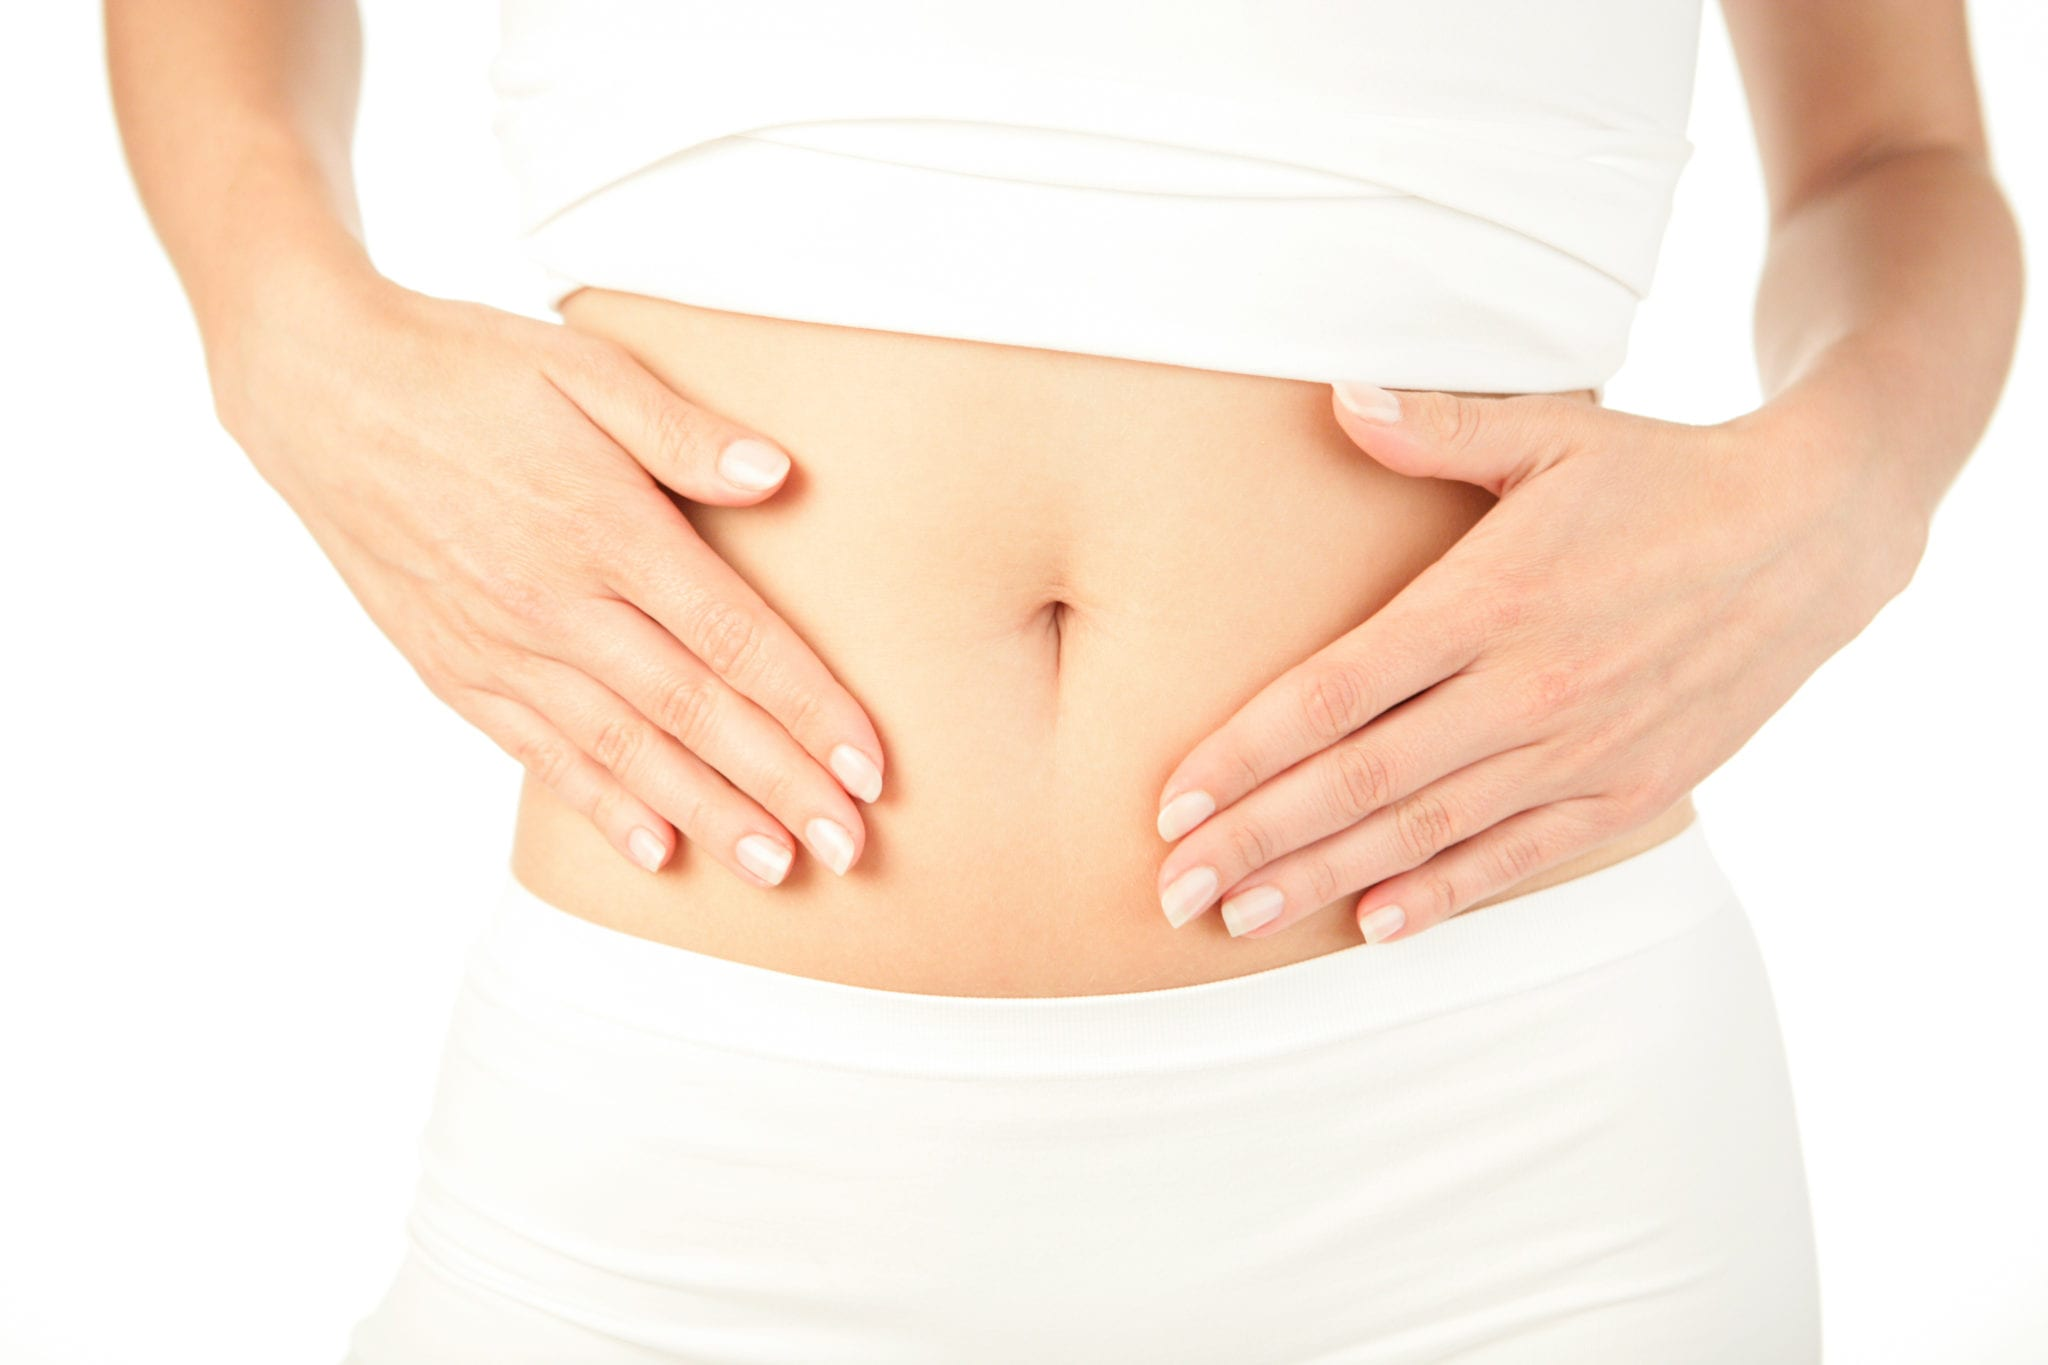 4 Easy Tips for Better Digestion